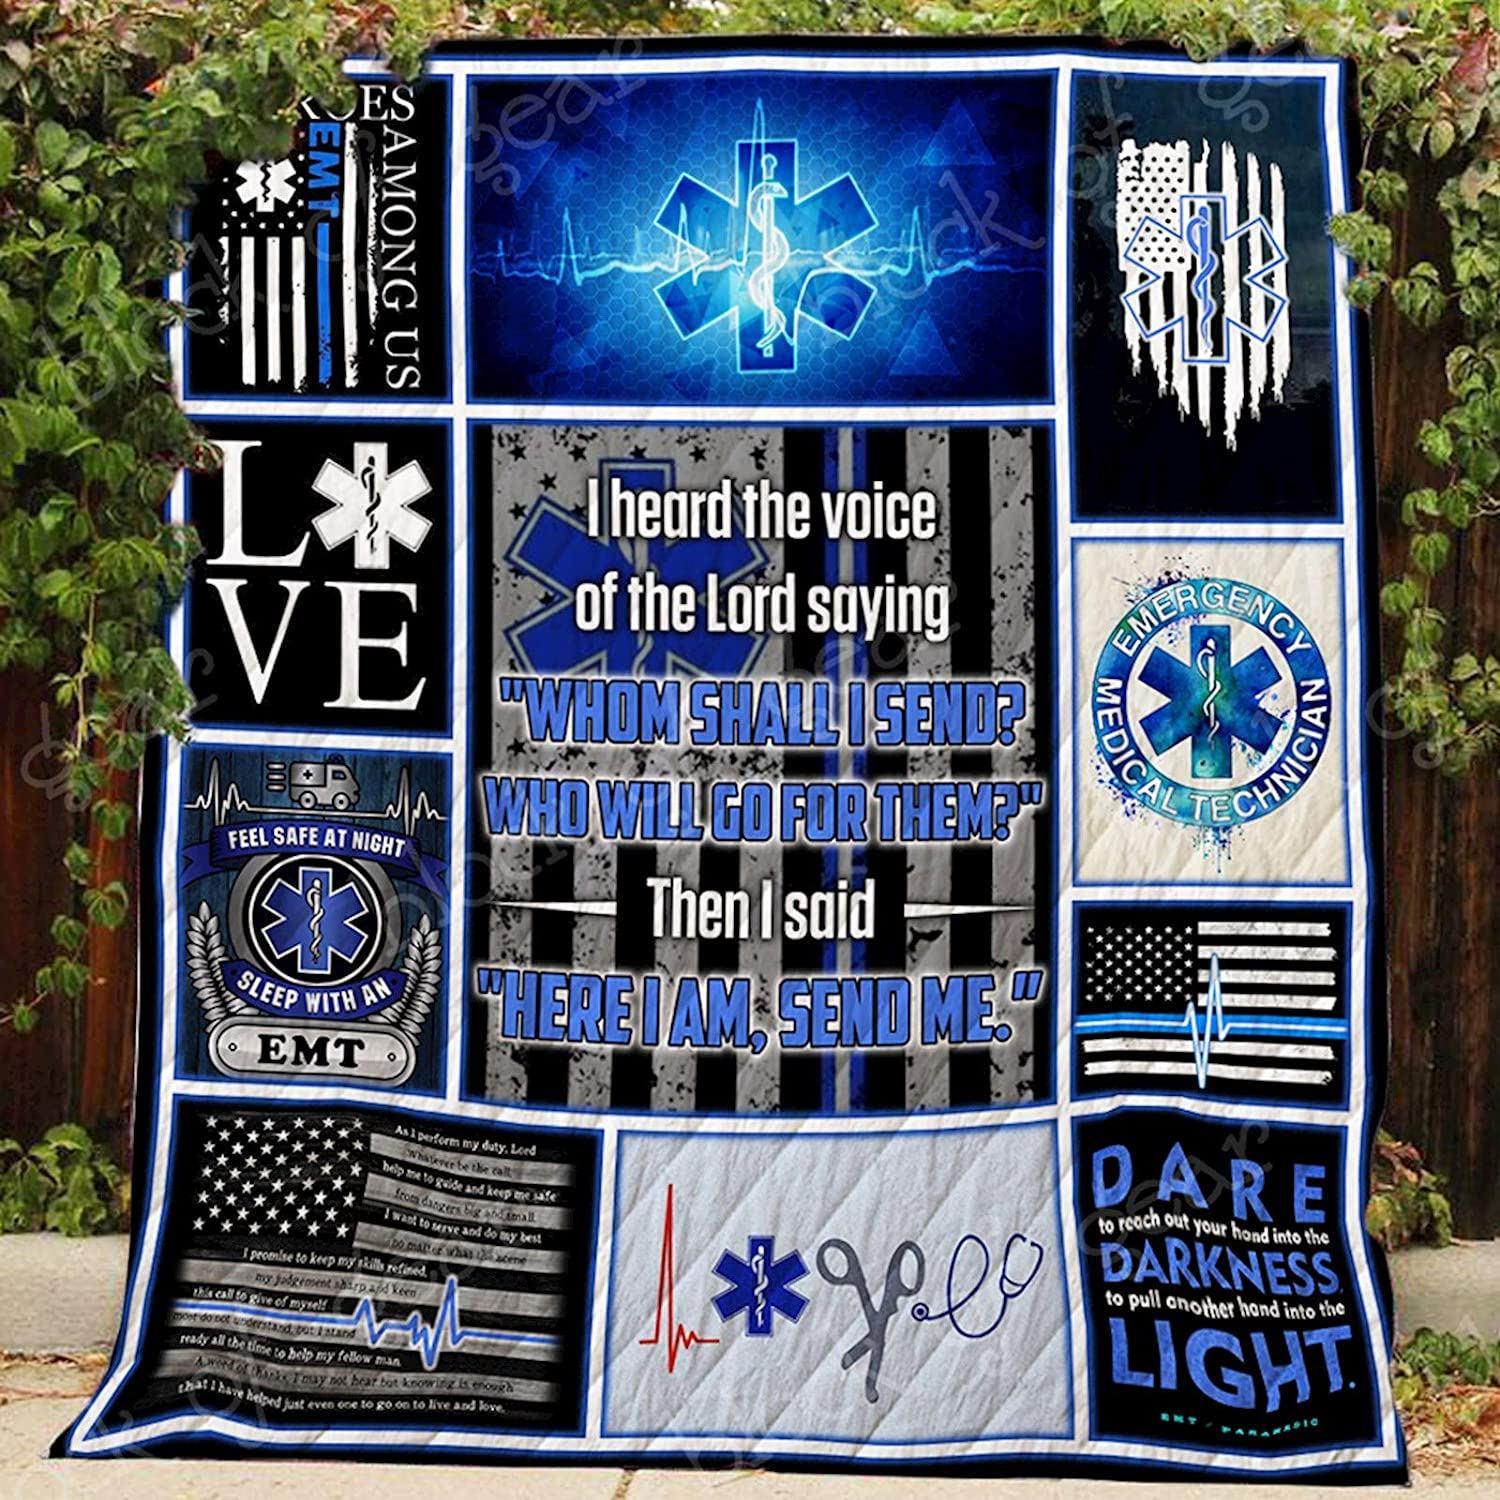 EMT Paramedic Thin White Line Quilt P202, Queen All-Season Quilts Comforters with Reversible Cotton King Queen Twin Size - Best Decorative Quilts-Unique Quilted for Gifts